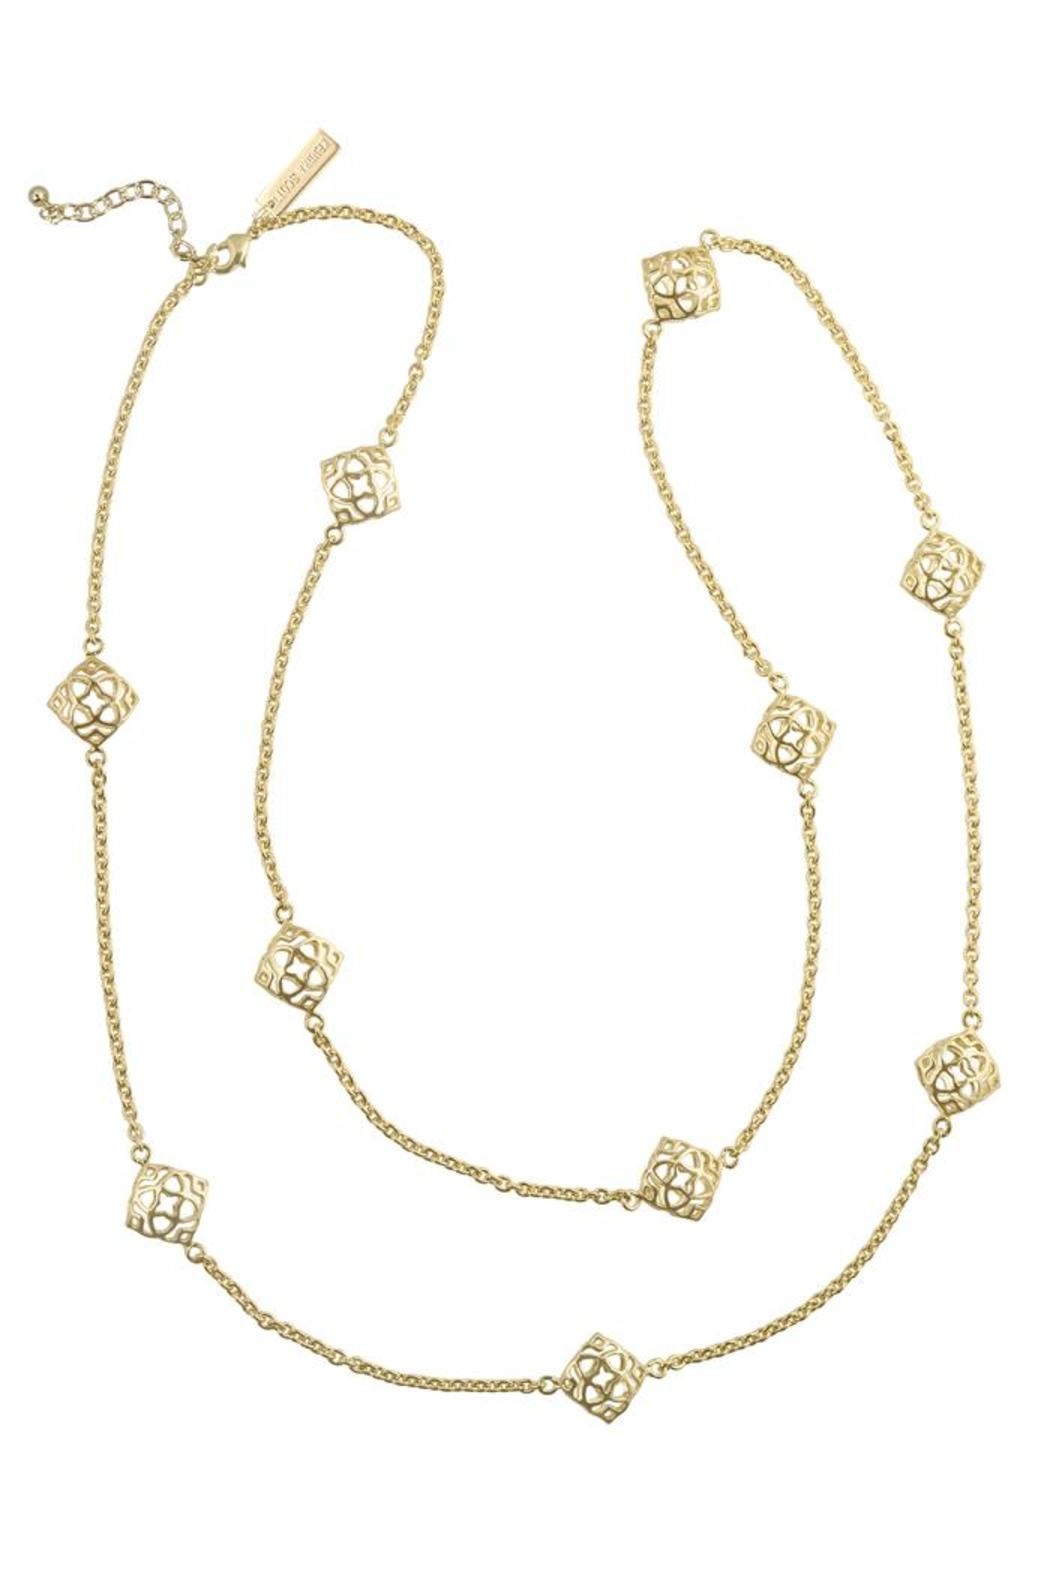 Kendra Scott Nemera Necklace Gold From Mississippi By The